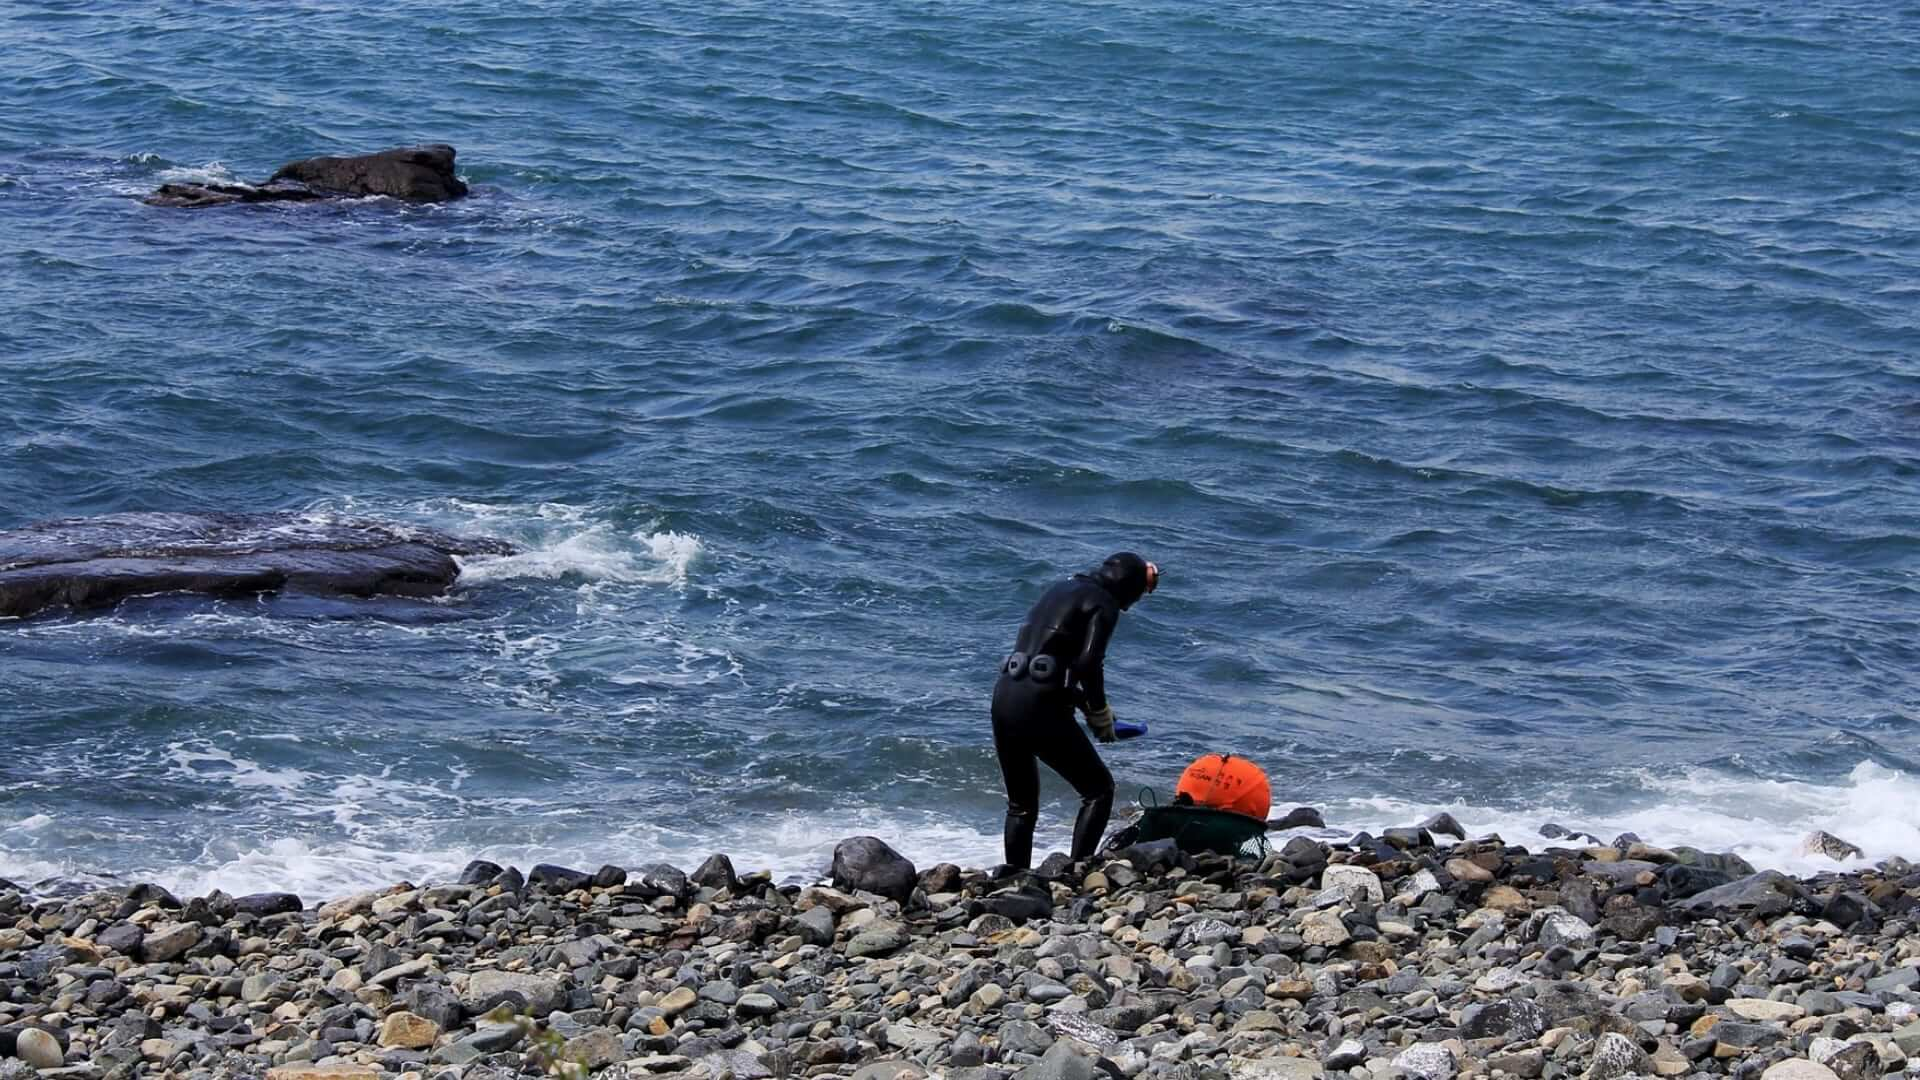 A female diver in a diving suit is picking something at a rocky beach at the Jeju Islands.